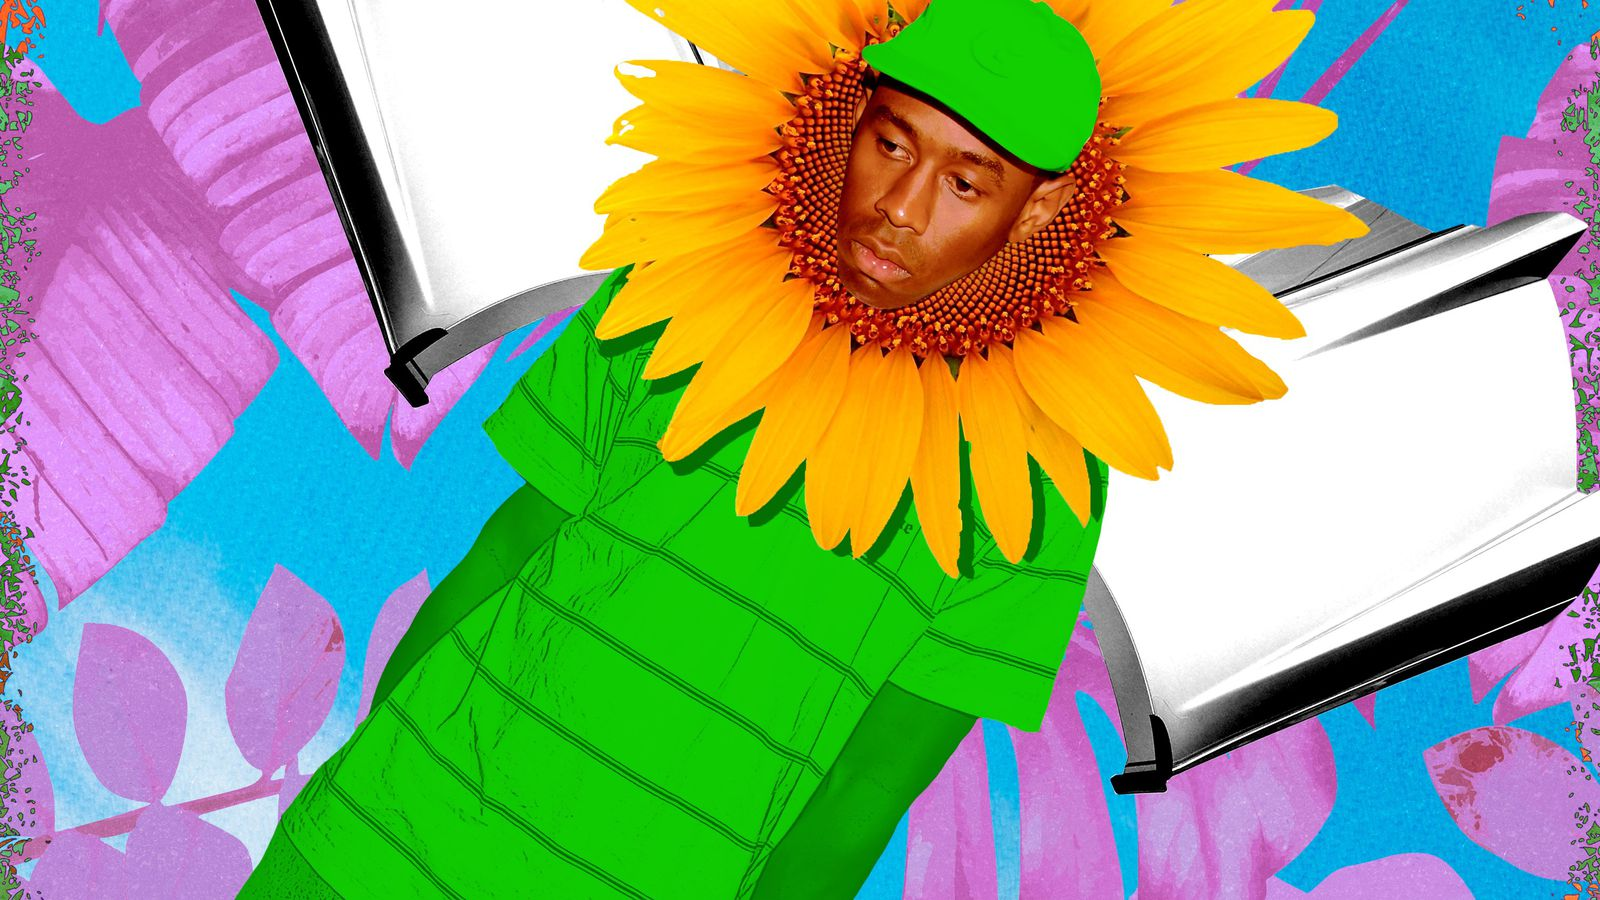 Tyler, the Creator Is Ready To Let You Into His World